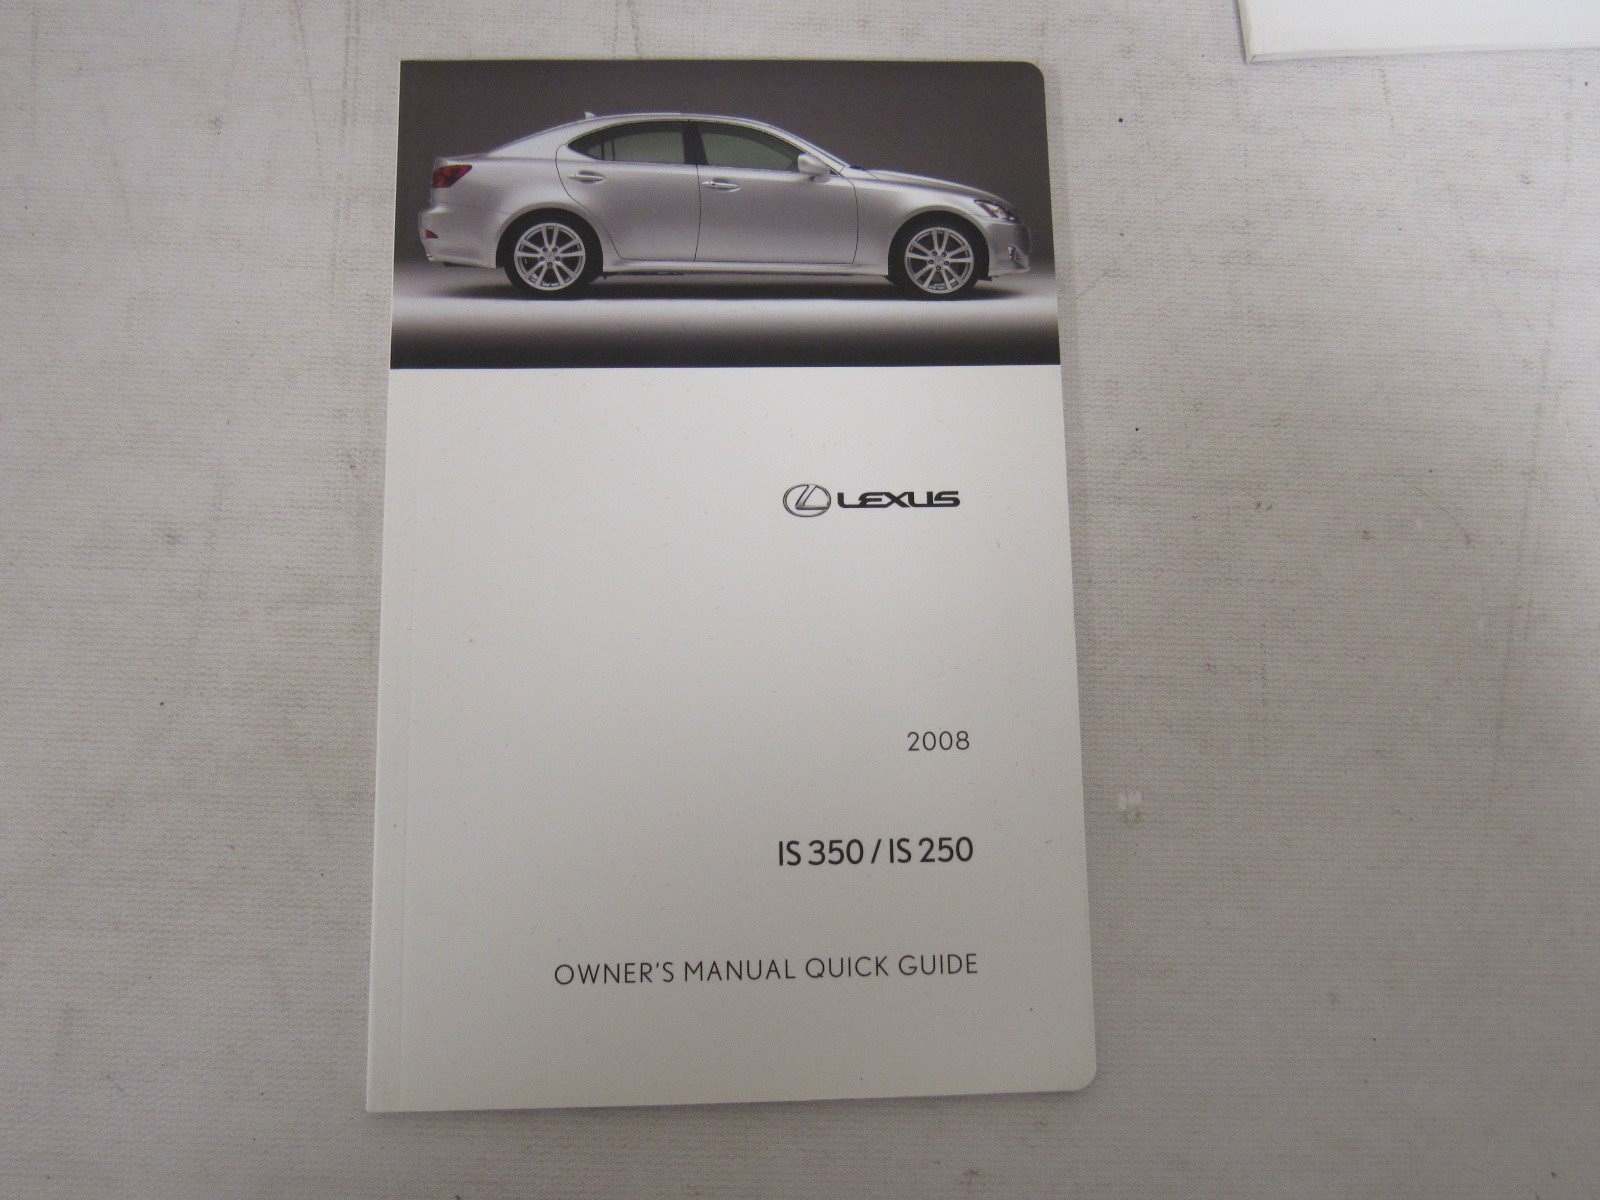 2008 Lexus IS 350/IS 250 Owners Manual Guide Book: Lexus: Amazon.com: Books